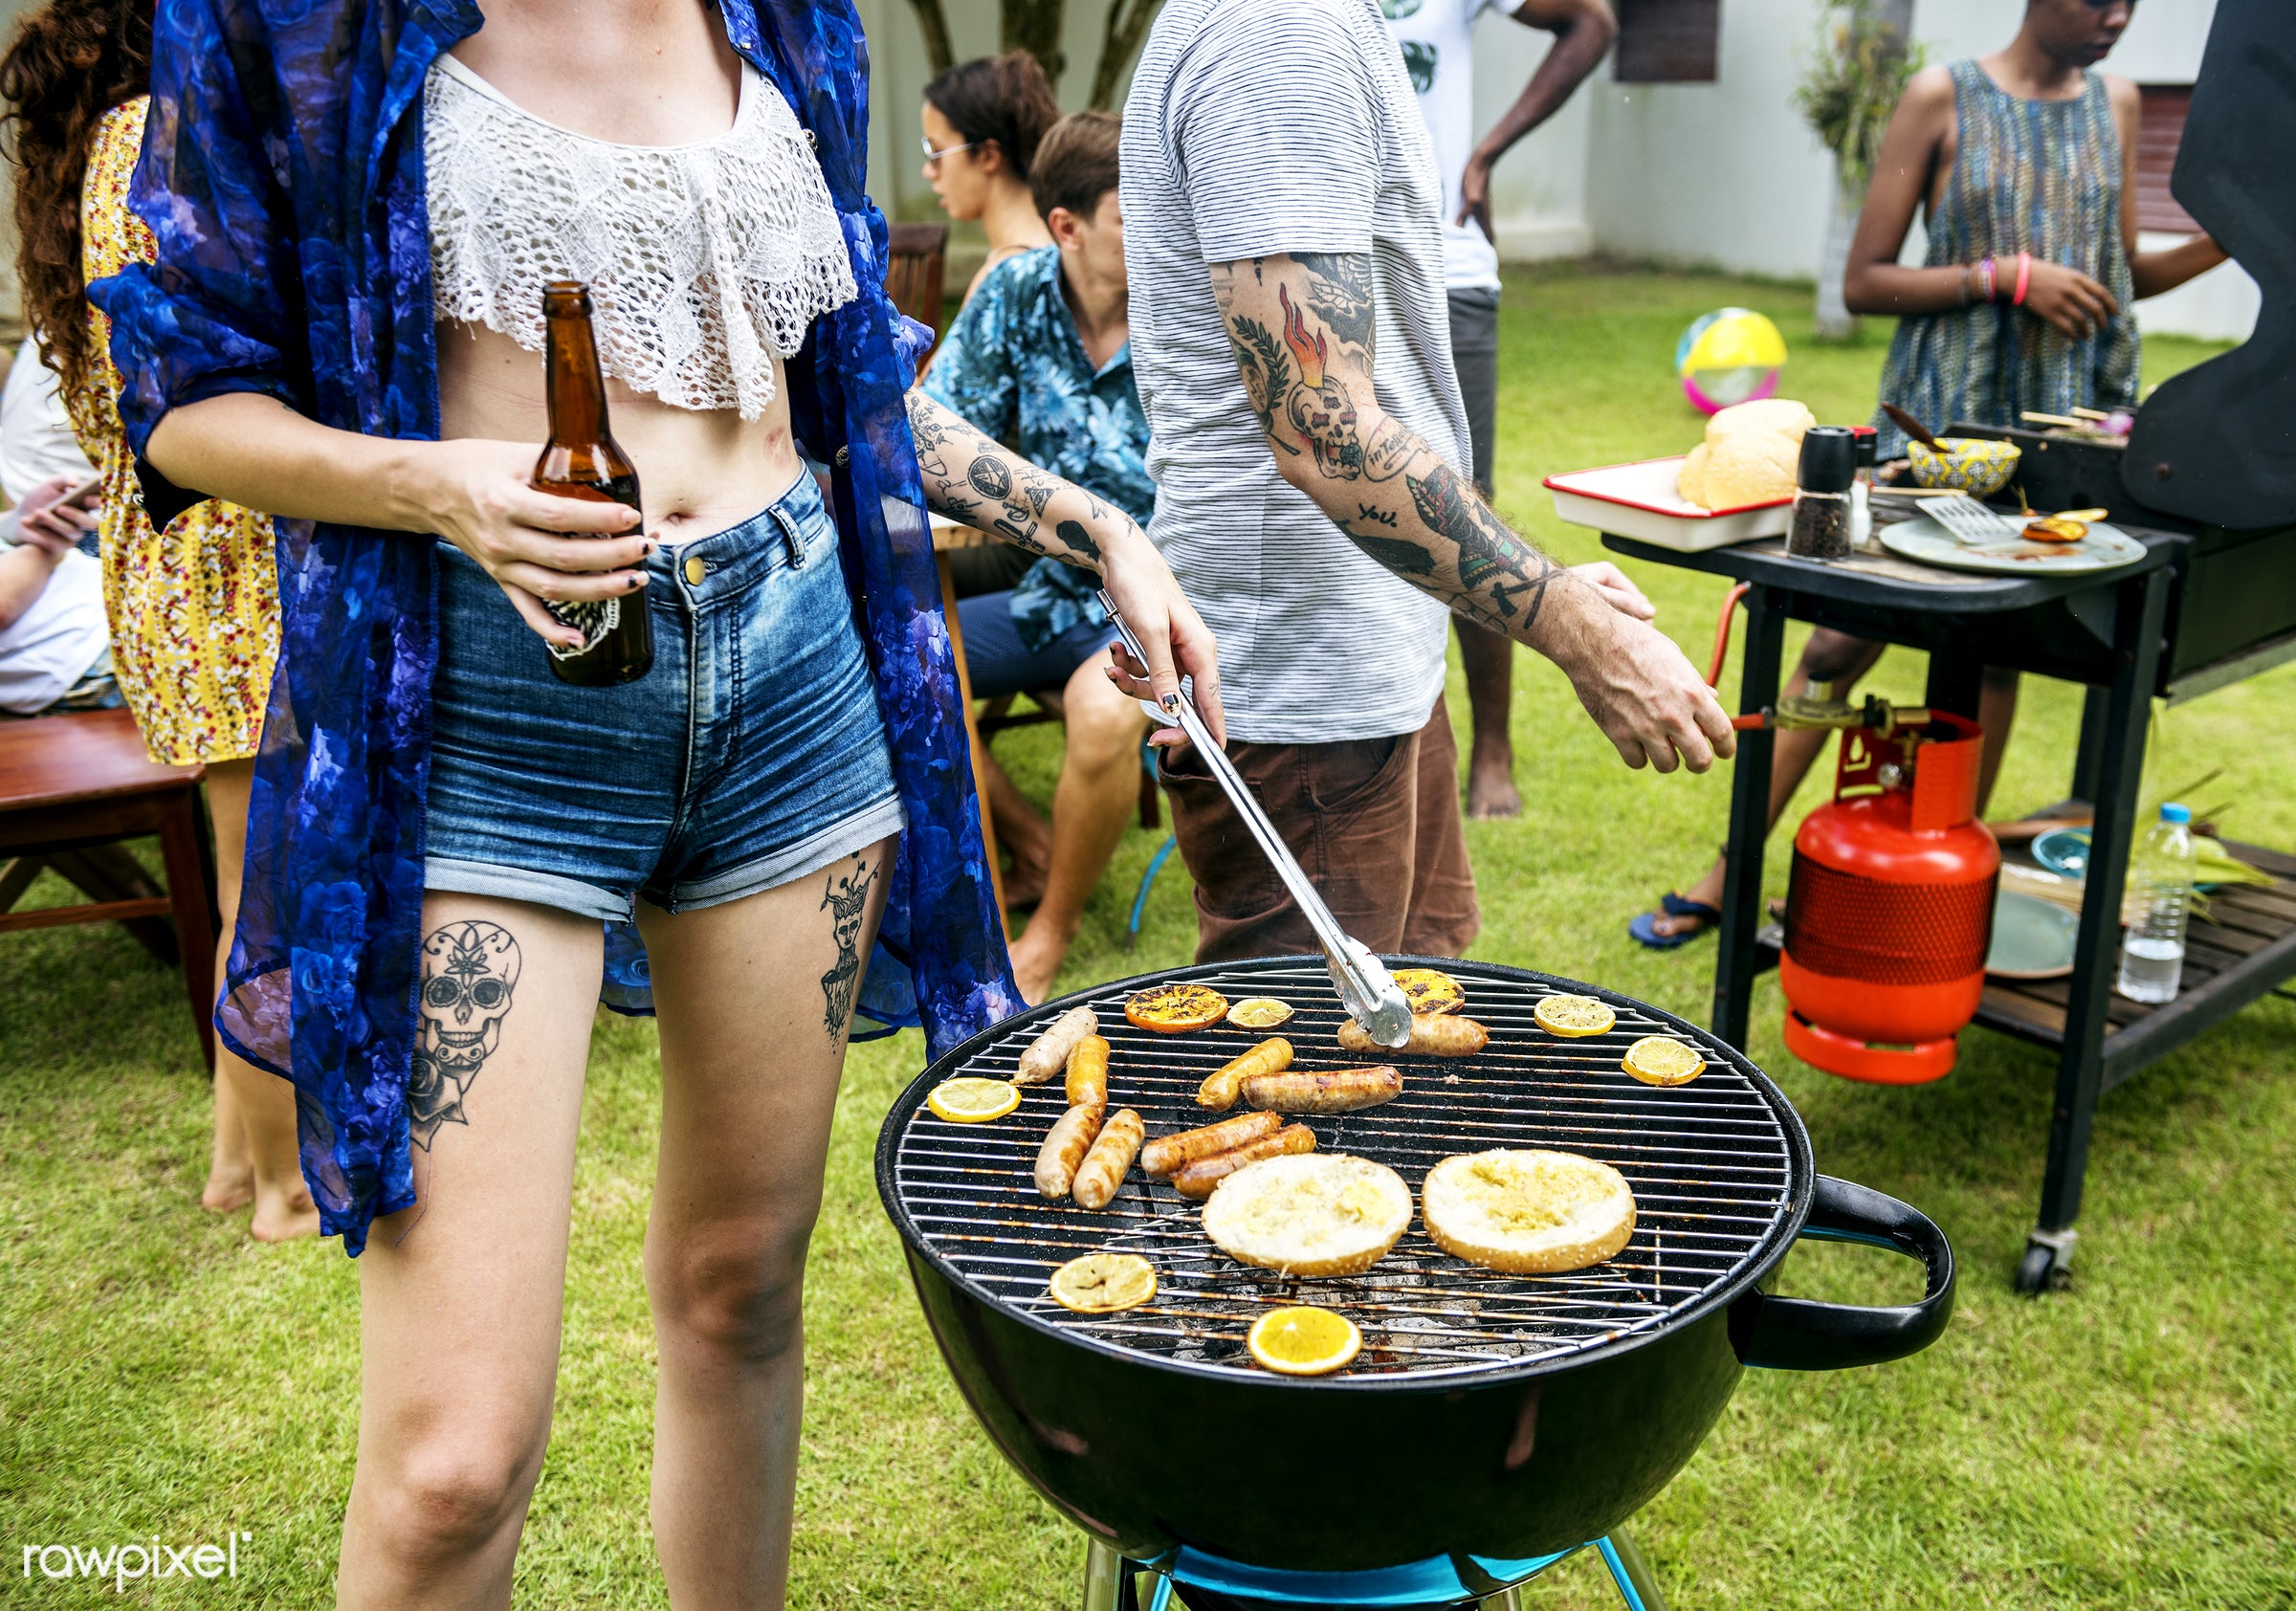 bbq, barbecue, casual, cooking, corns, diverse, feet, food, fresh, friends, garden, grass, grill, group, hands, hanging out...